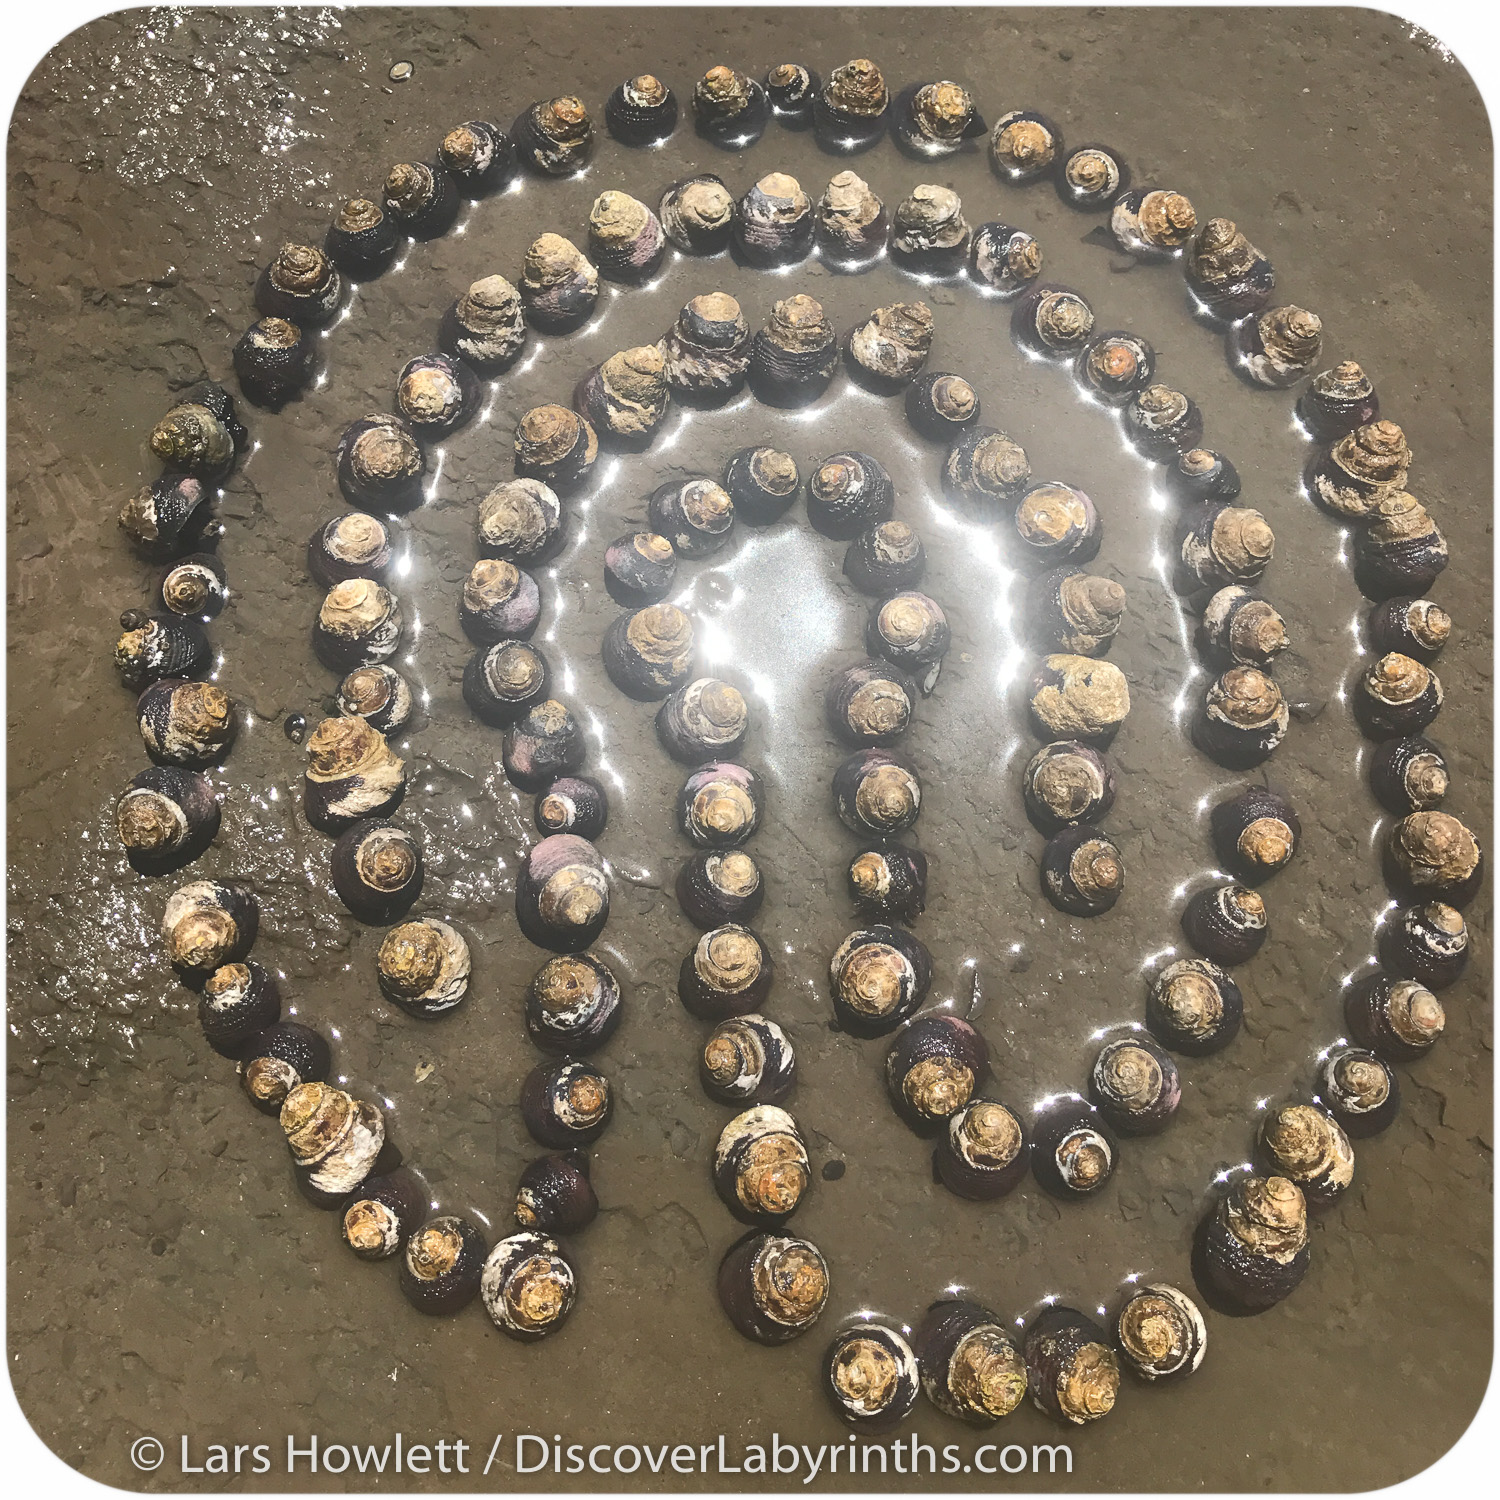 Snail Shell Labyrinth